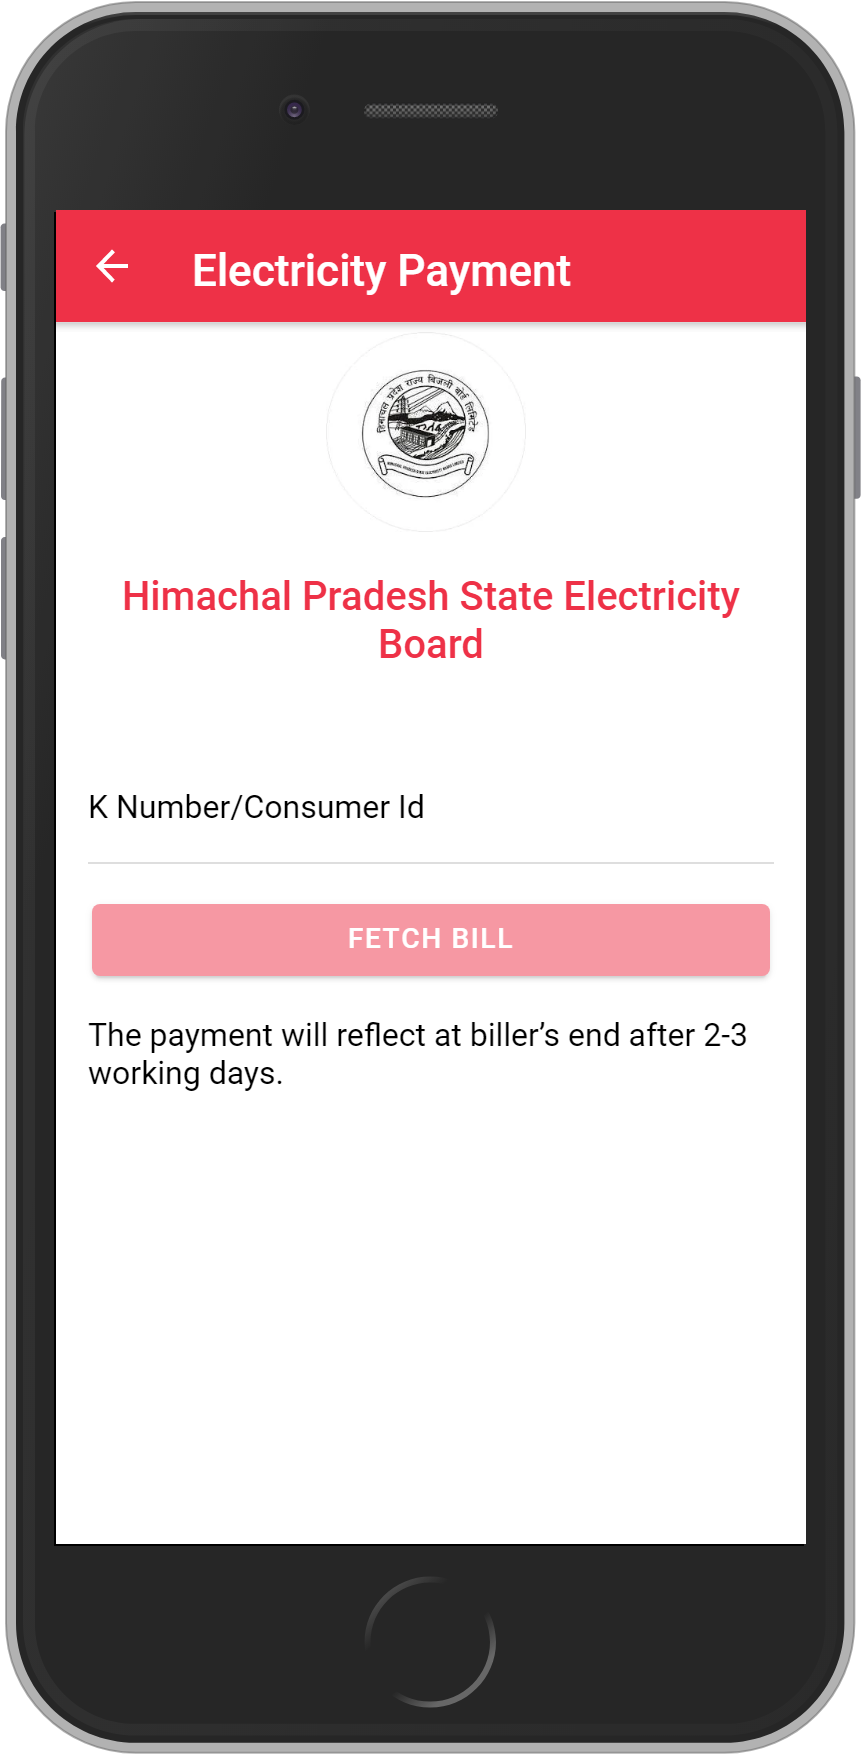 Get UNLIMITED <b>0.1%</b> CASHBACK on Himachal Pradesh State Electricity Board Bill Payment.